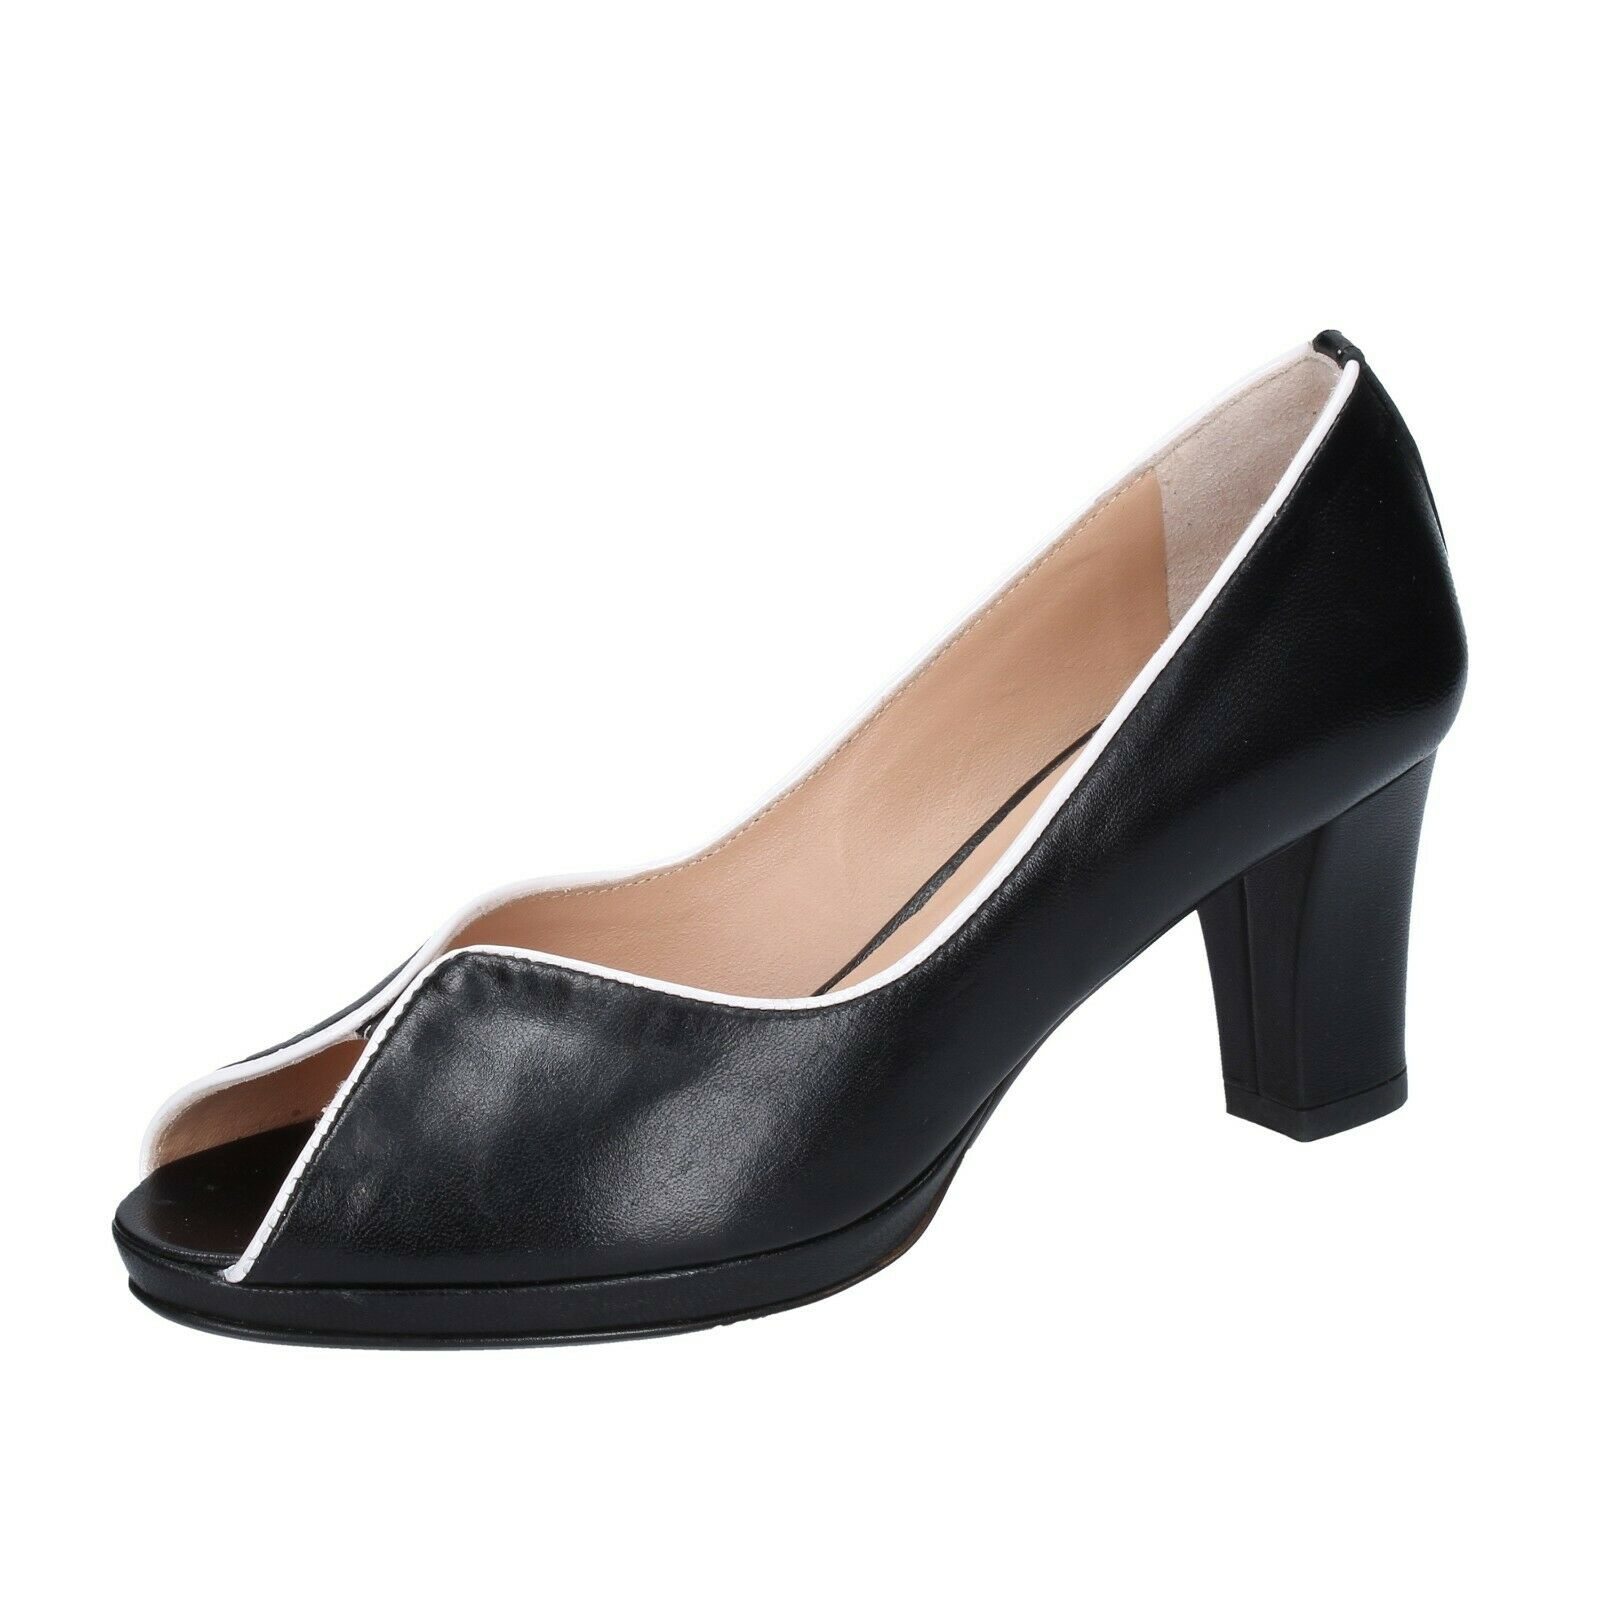 damen schuhe CLOE 4 (EU 37) courts schwarz leather BS339-37